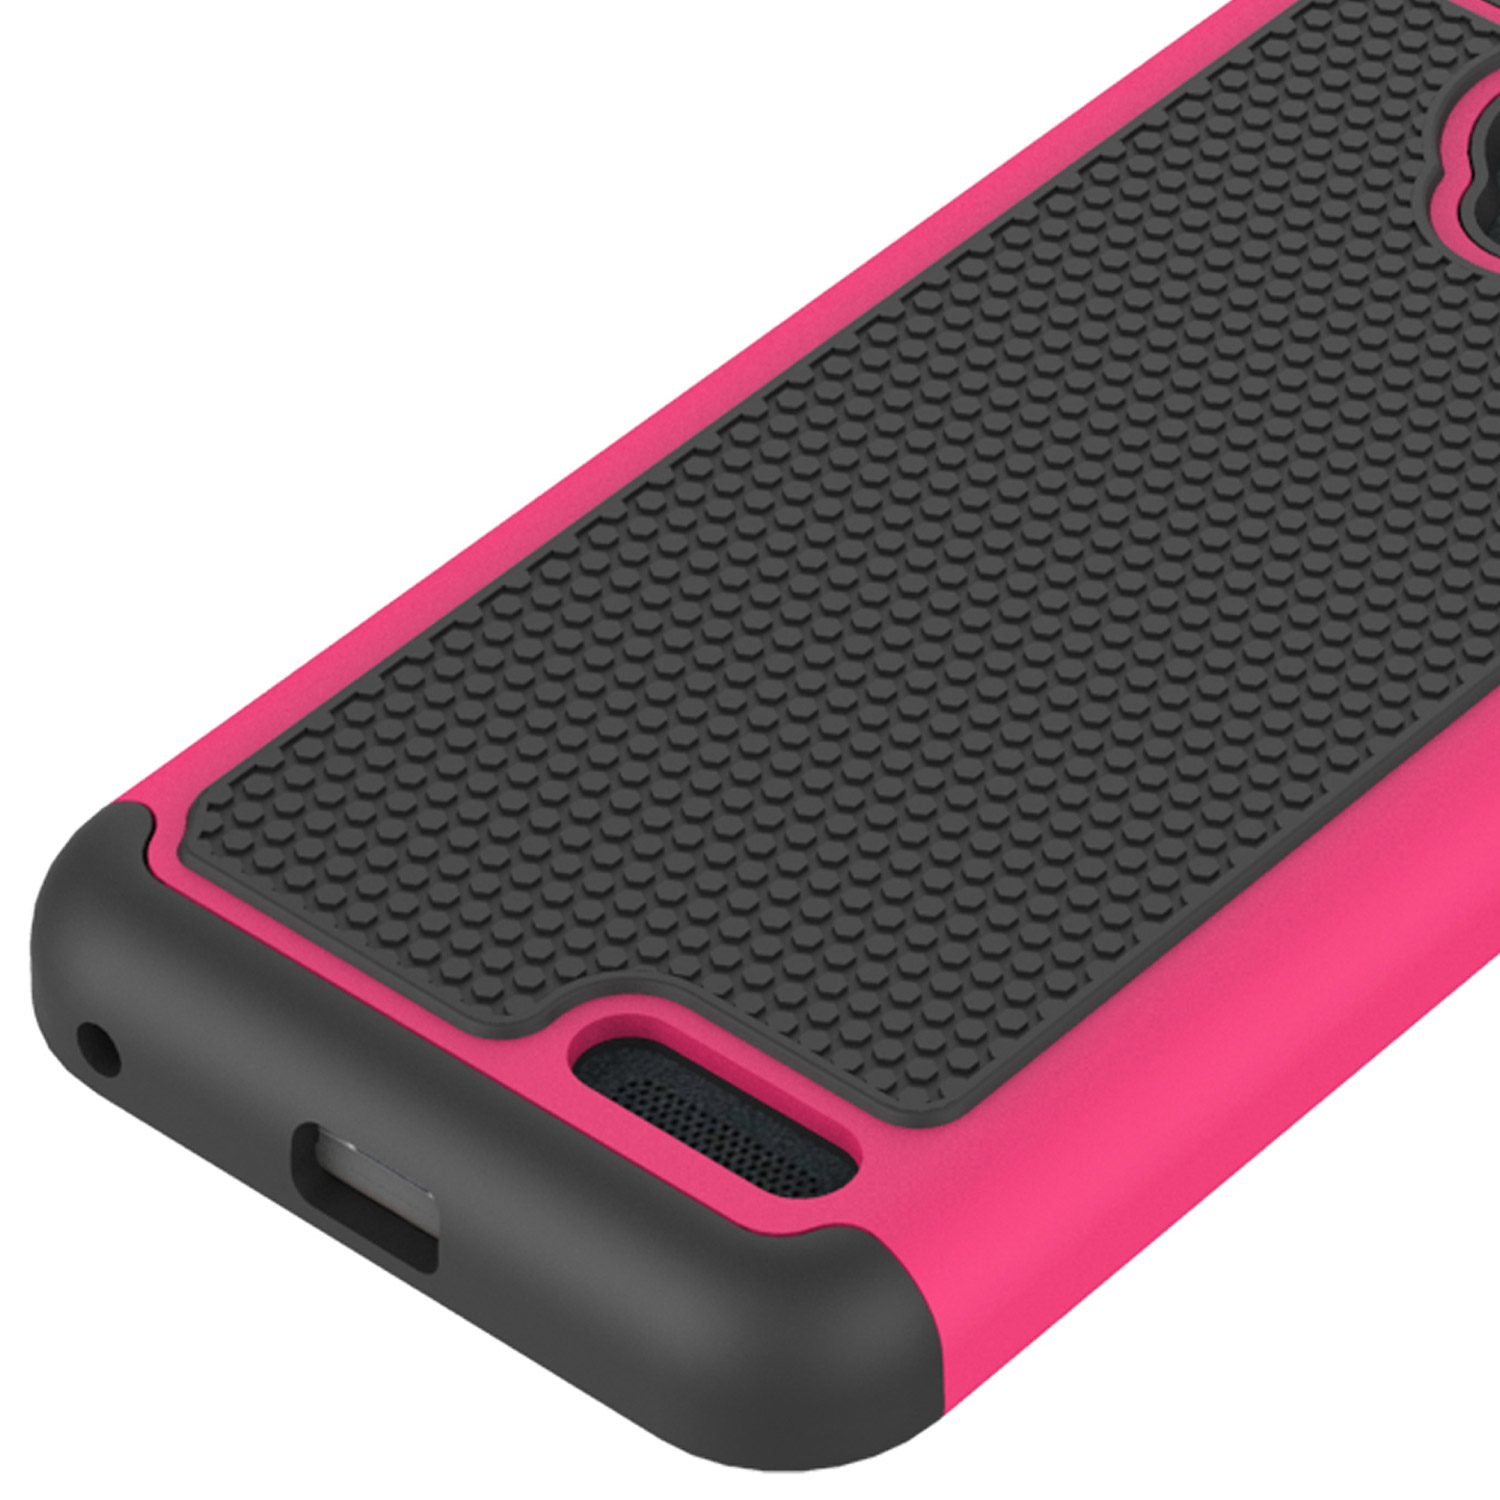 Pink-Hard-Case-for-ZTE-ZMax-Champ-ZMax-Grand-Avid-916-Hybrid-Phone-Cover